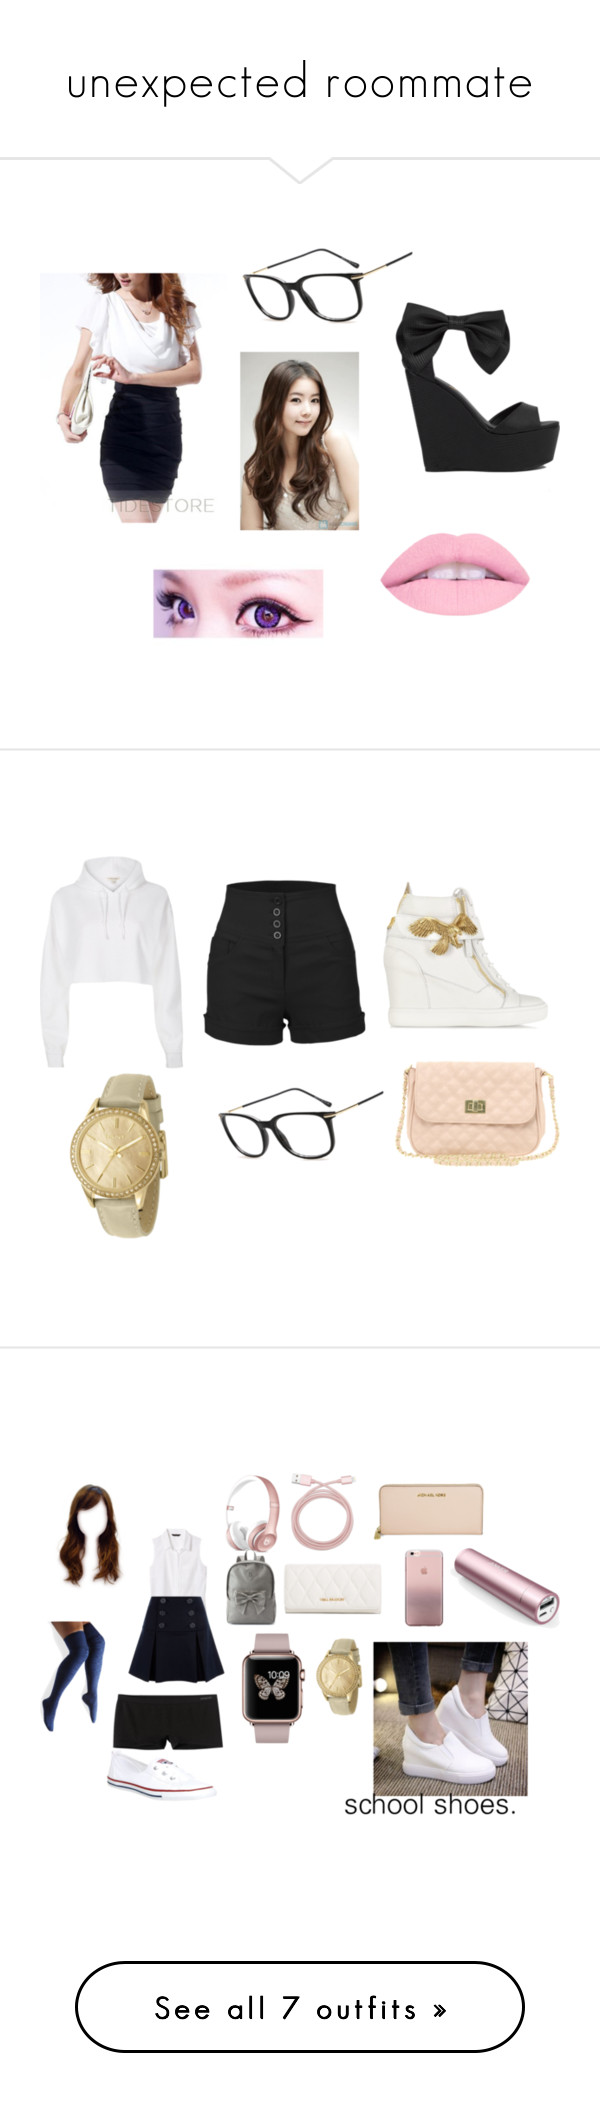 """""""unexpected roommate"""" by kpop247 ❤ liked on Polyvore featuring Privileged by J.C. Dossier, LE3NO, River Island, Giuseppe Zanotti, DKNY, ASOS, Candie's, Banana Republic, Belkin and RED Valentino"""